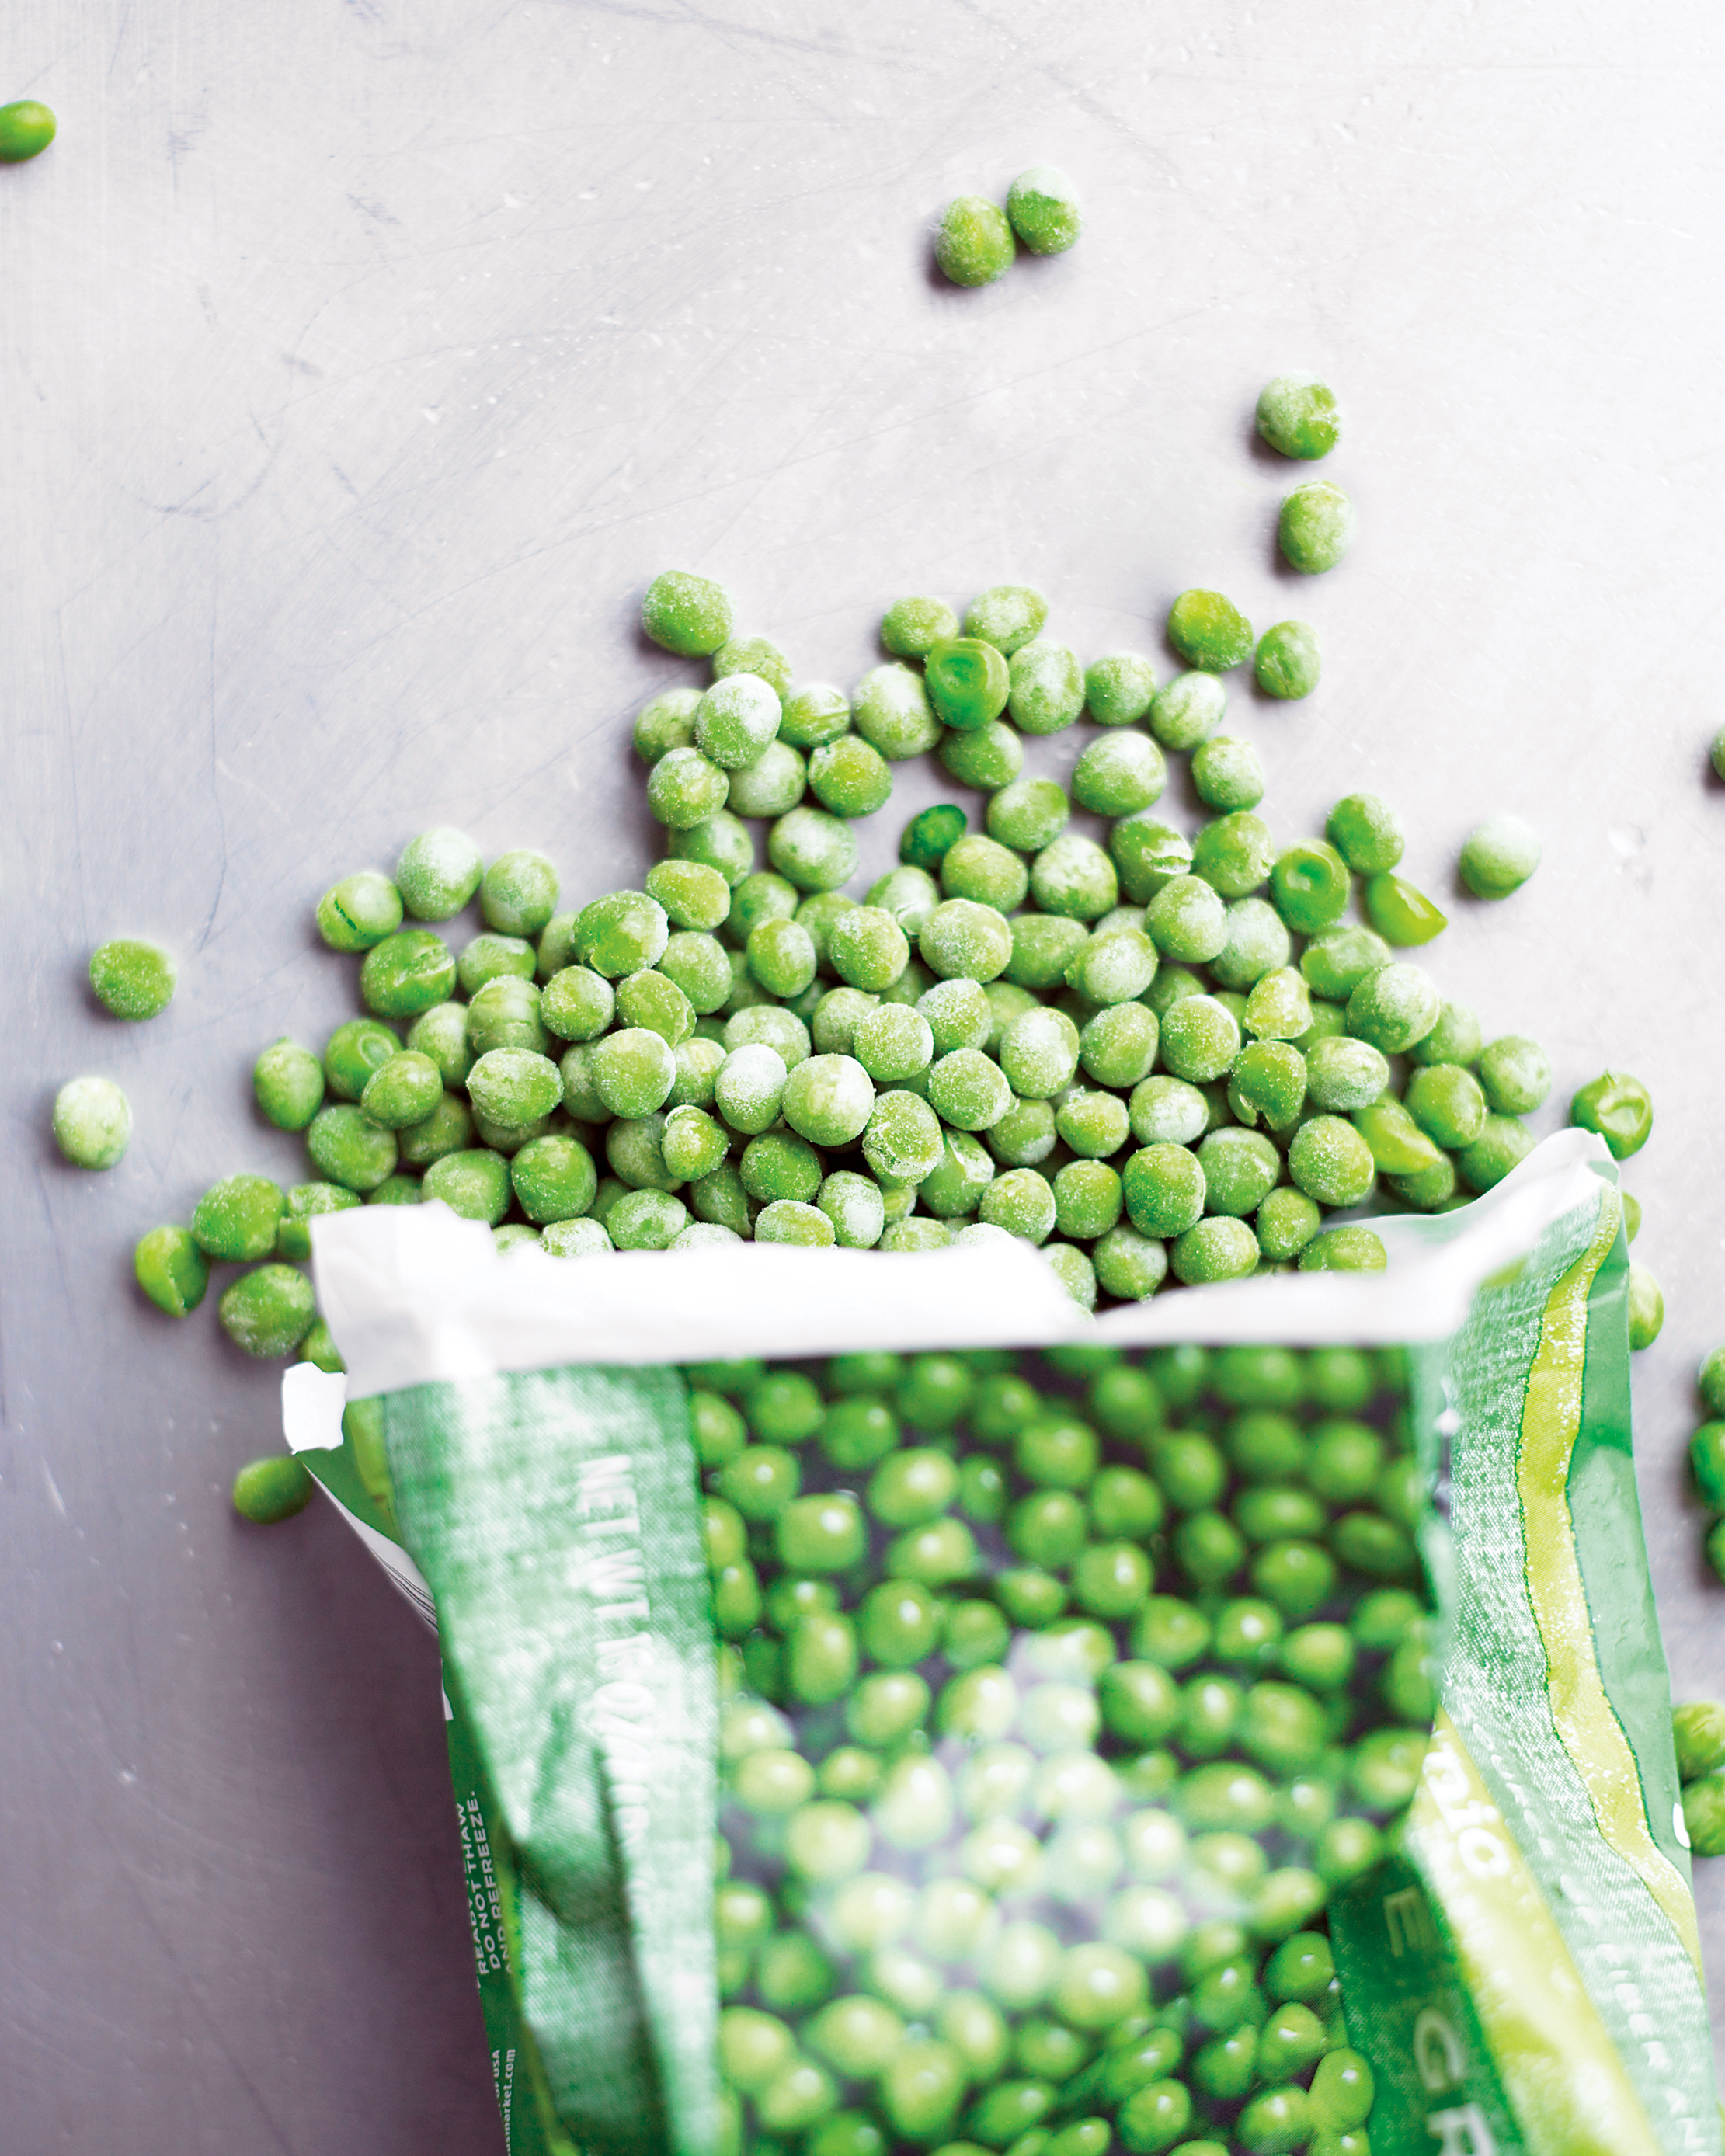 15 Frozen Pea Recipes to Make Until Spring Arrives